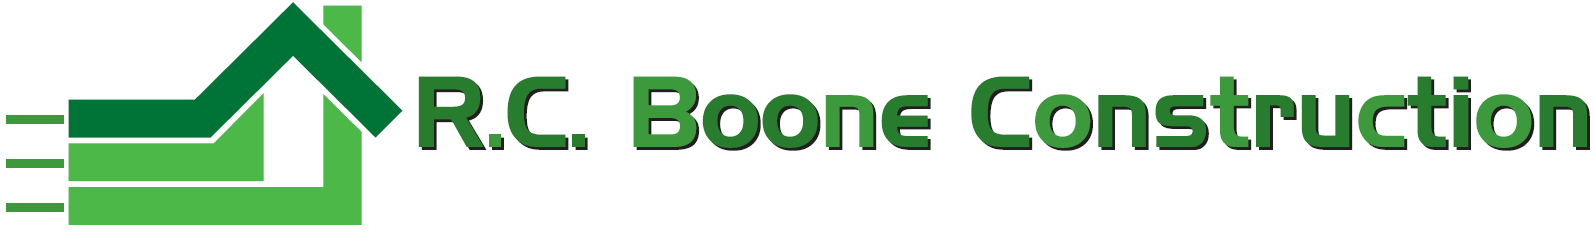 R.C. Boone Construction